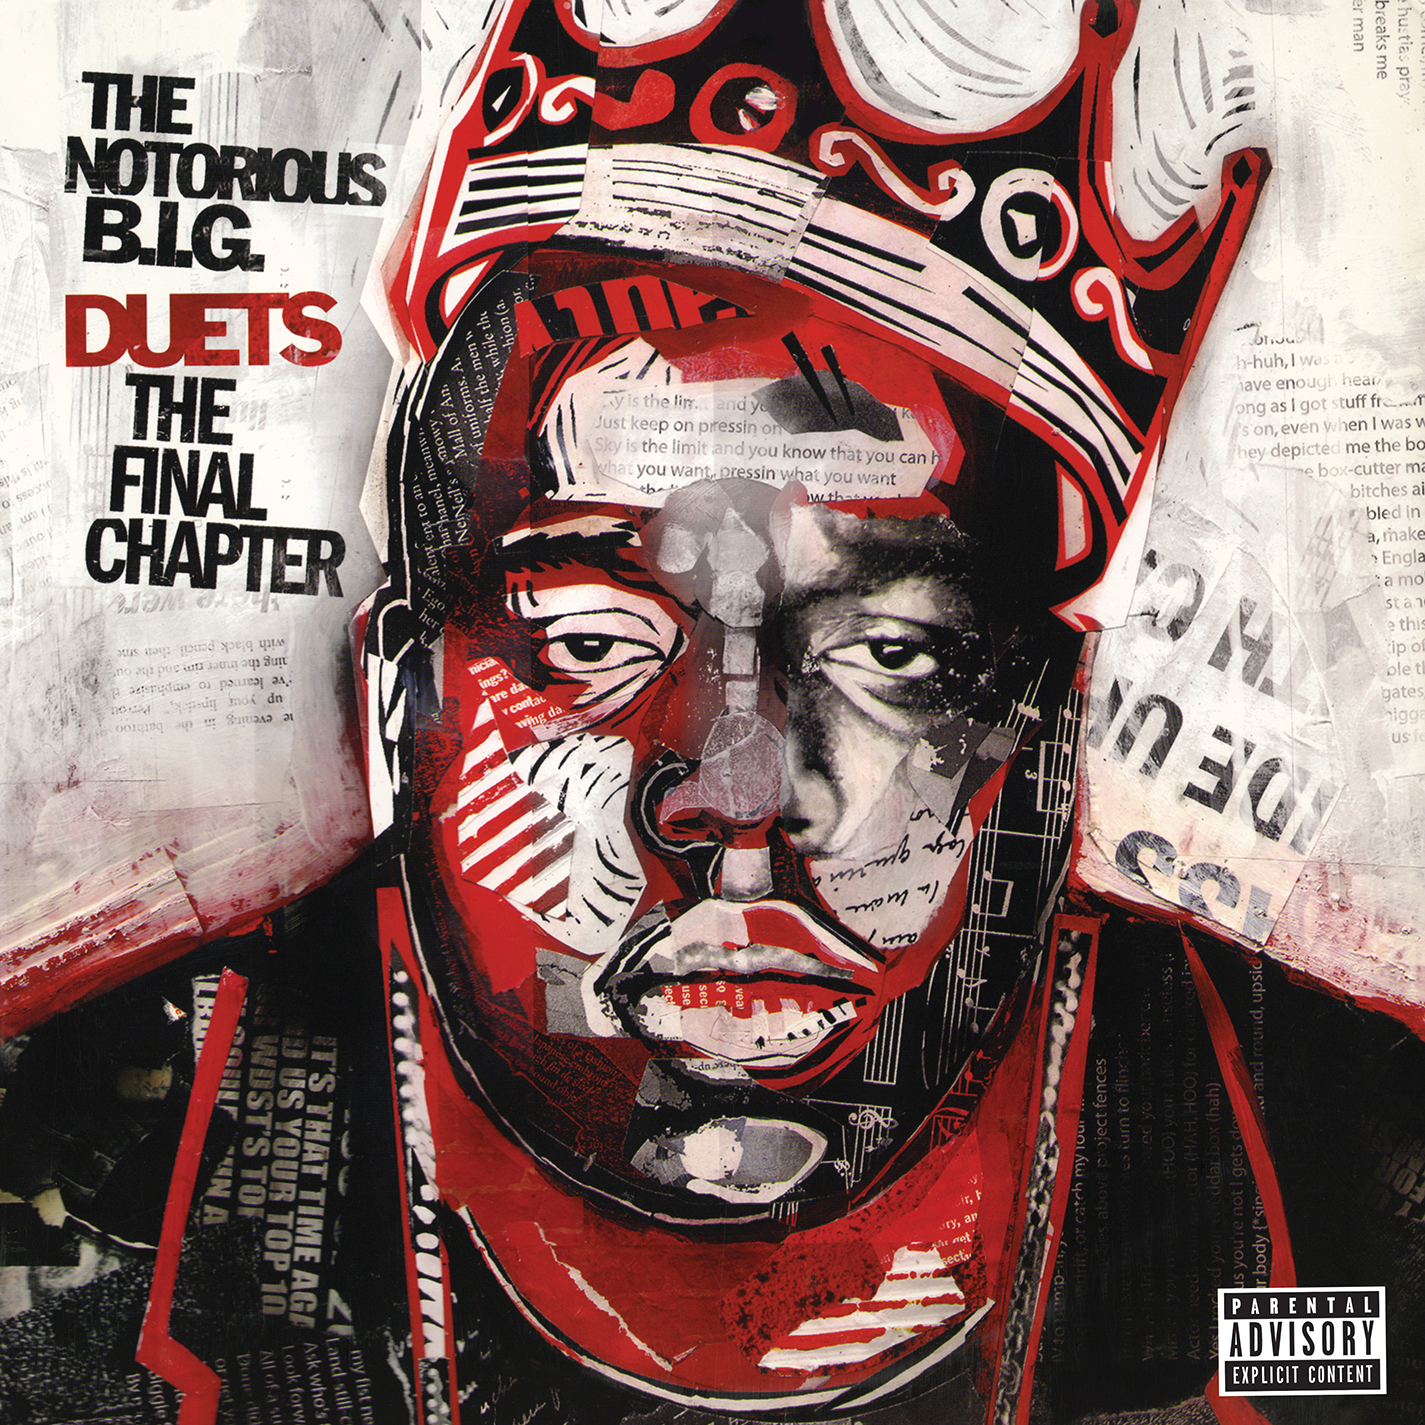 The Notorious BIG - Biggie Duets: The Final Chapter [RSD Drops 2021]